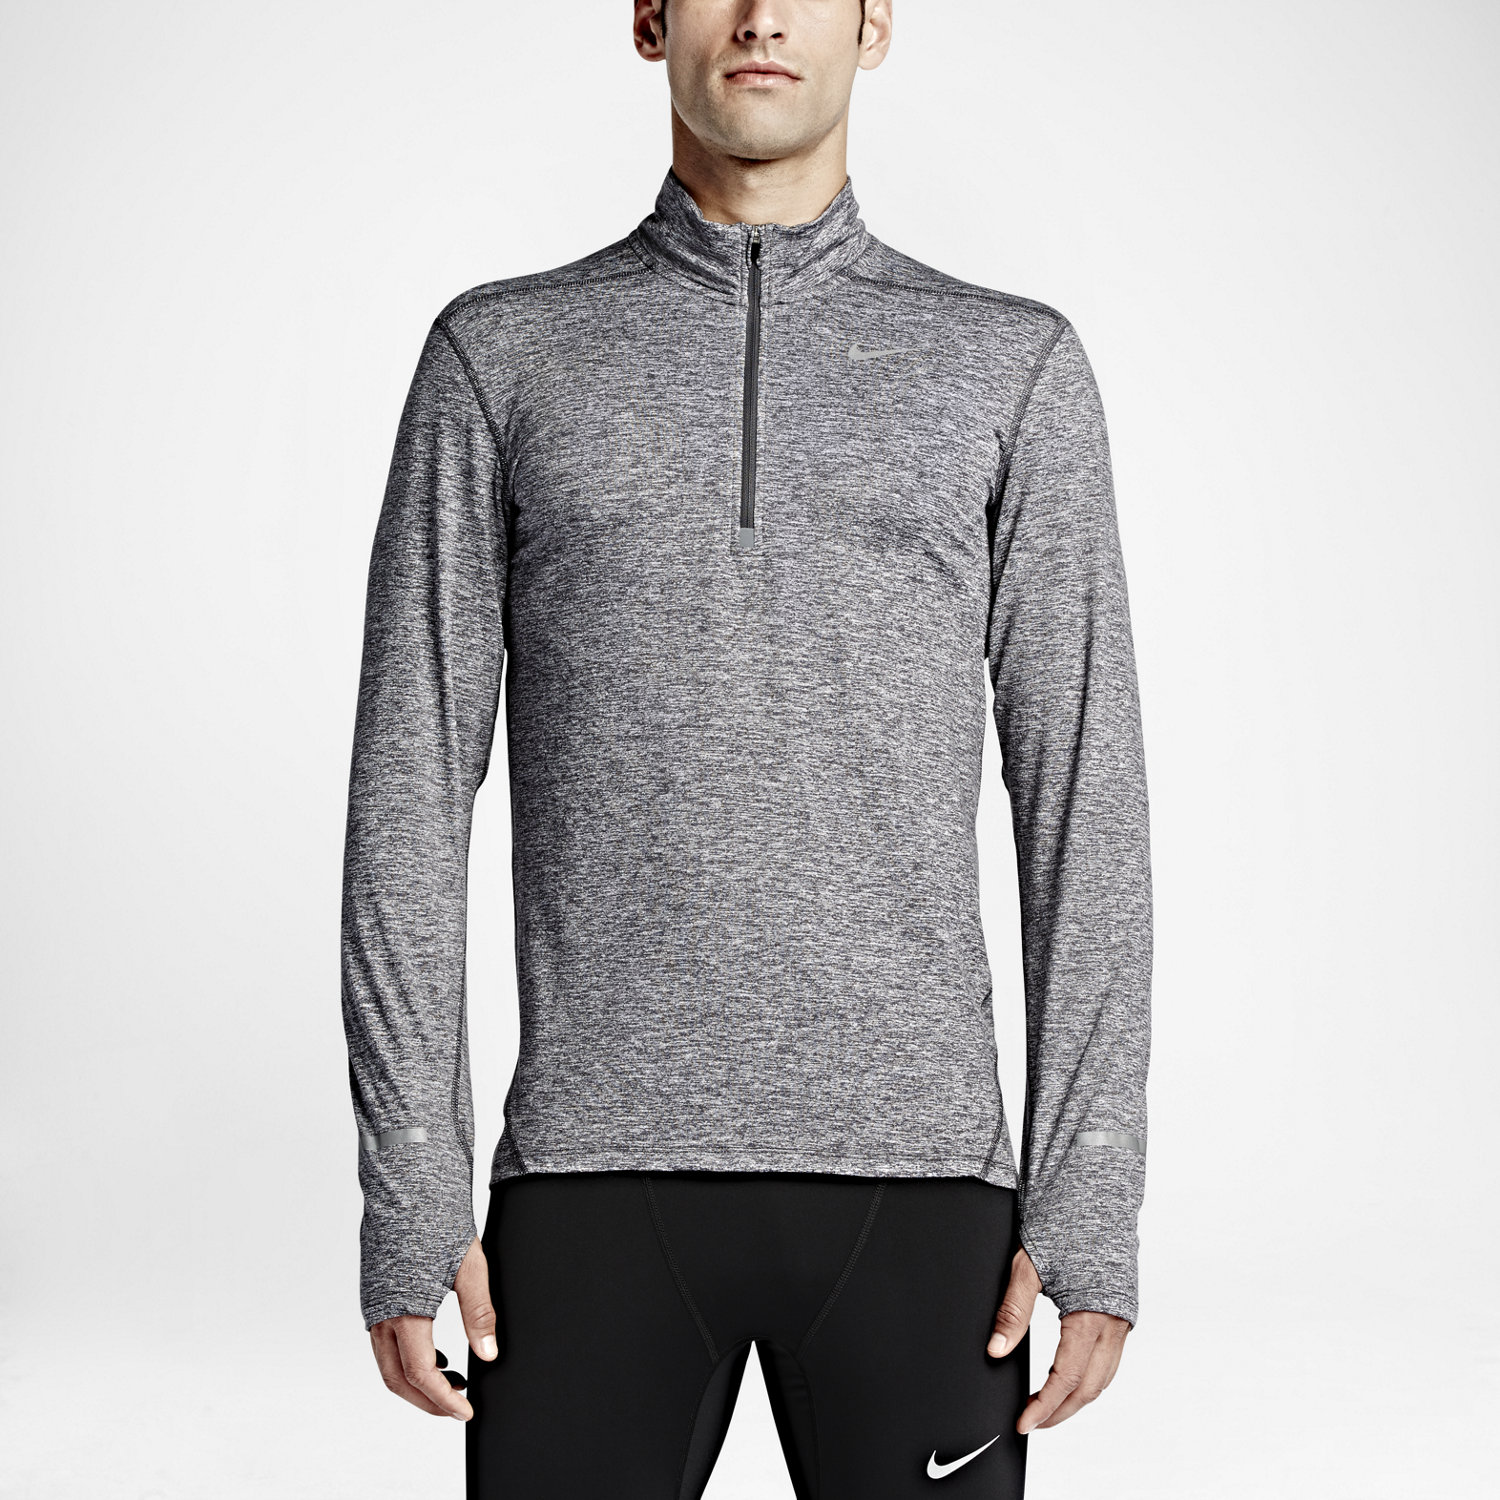 Nike Dry Element Men's Half-Zip Long Sleeve Running Top. Nike.com